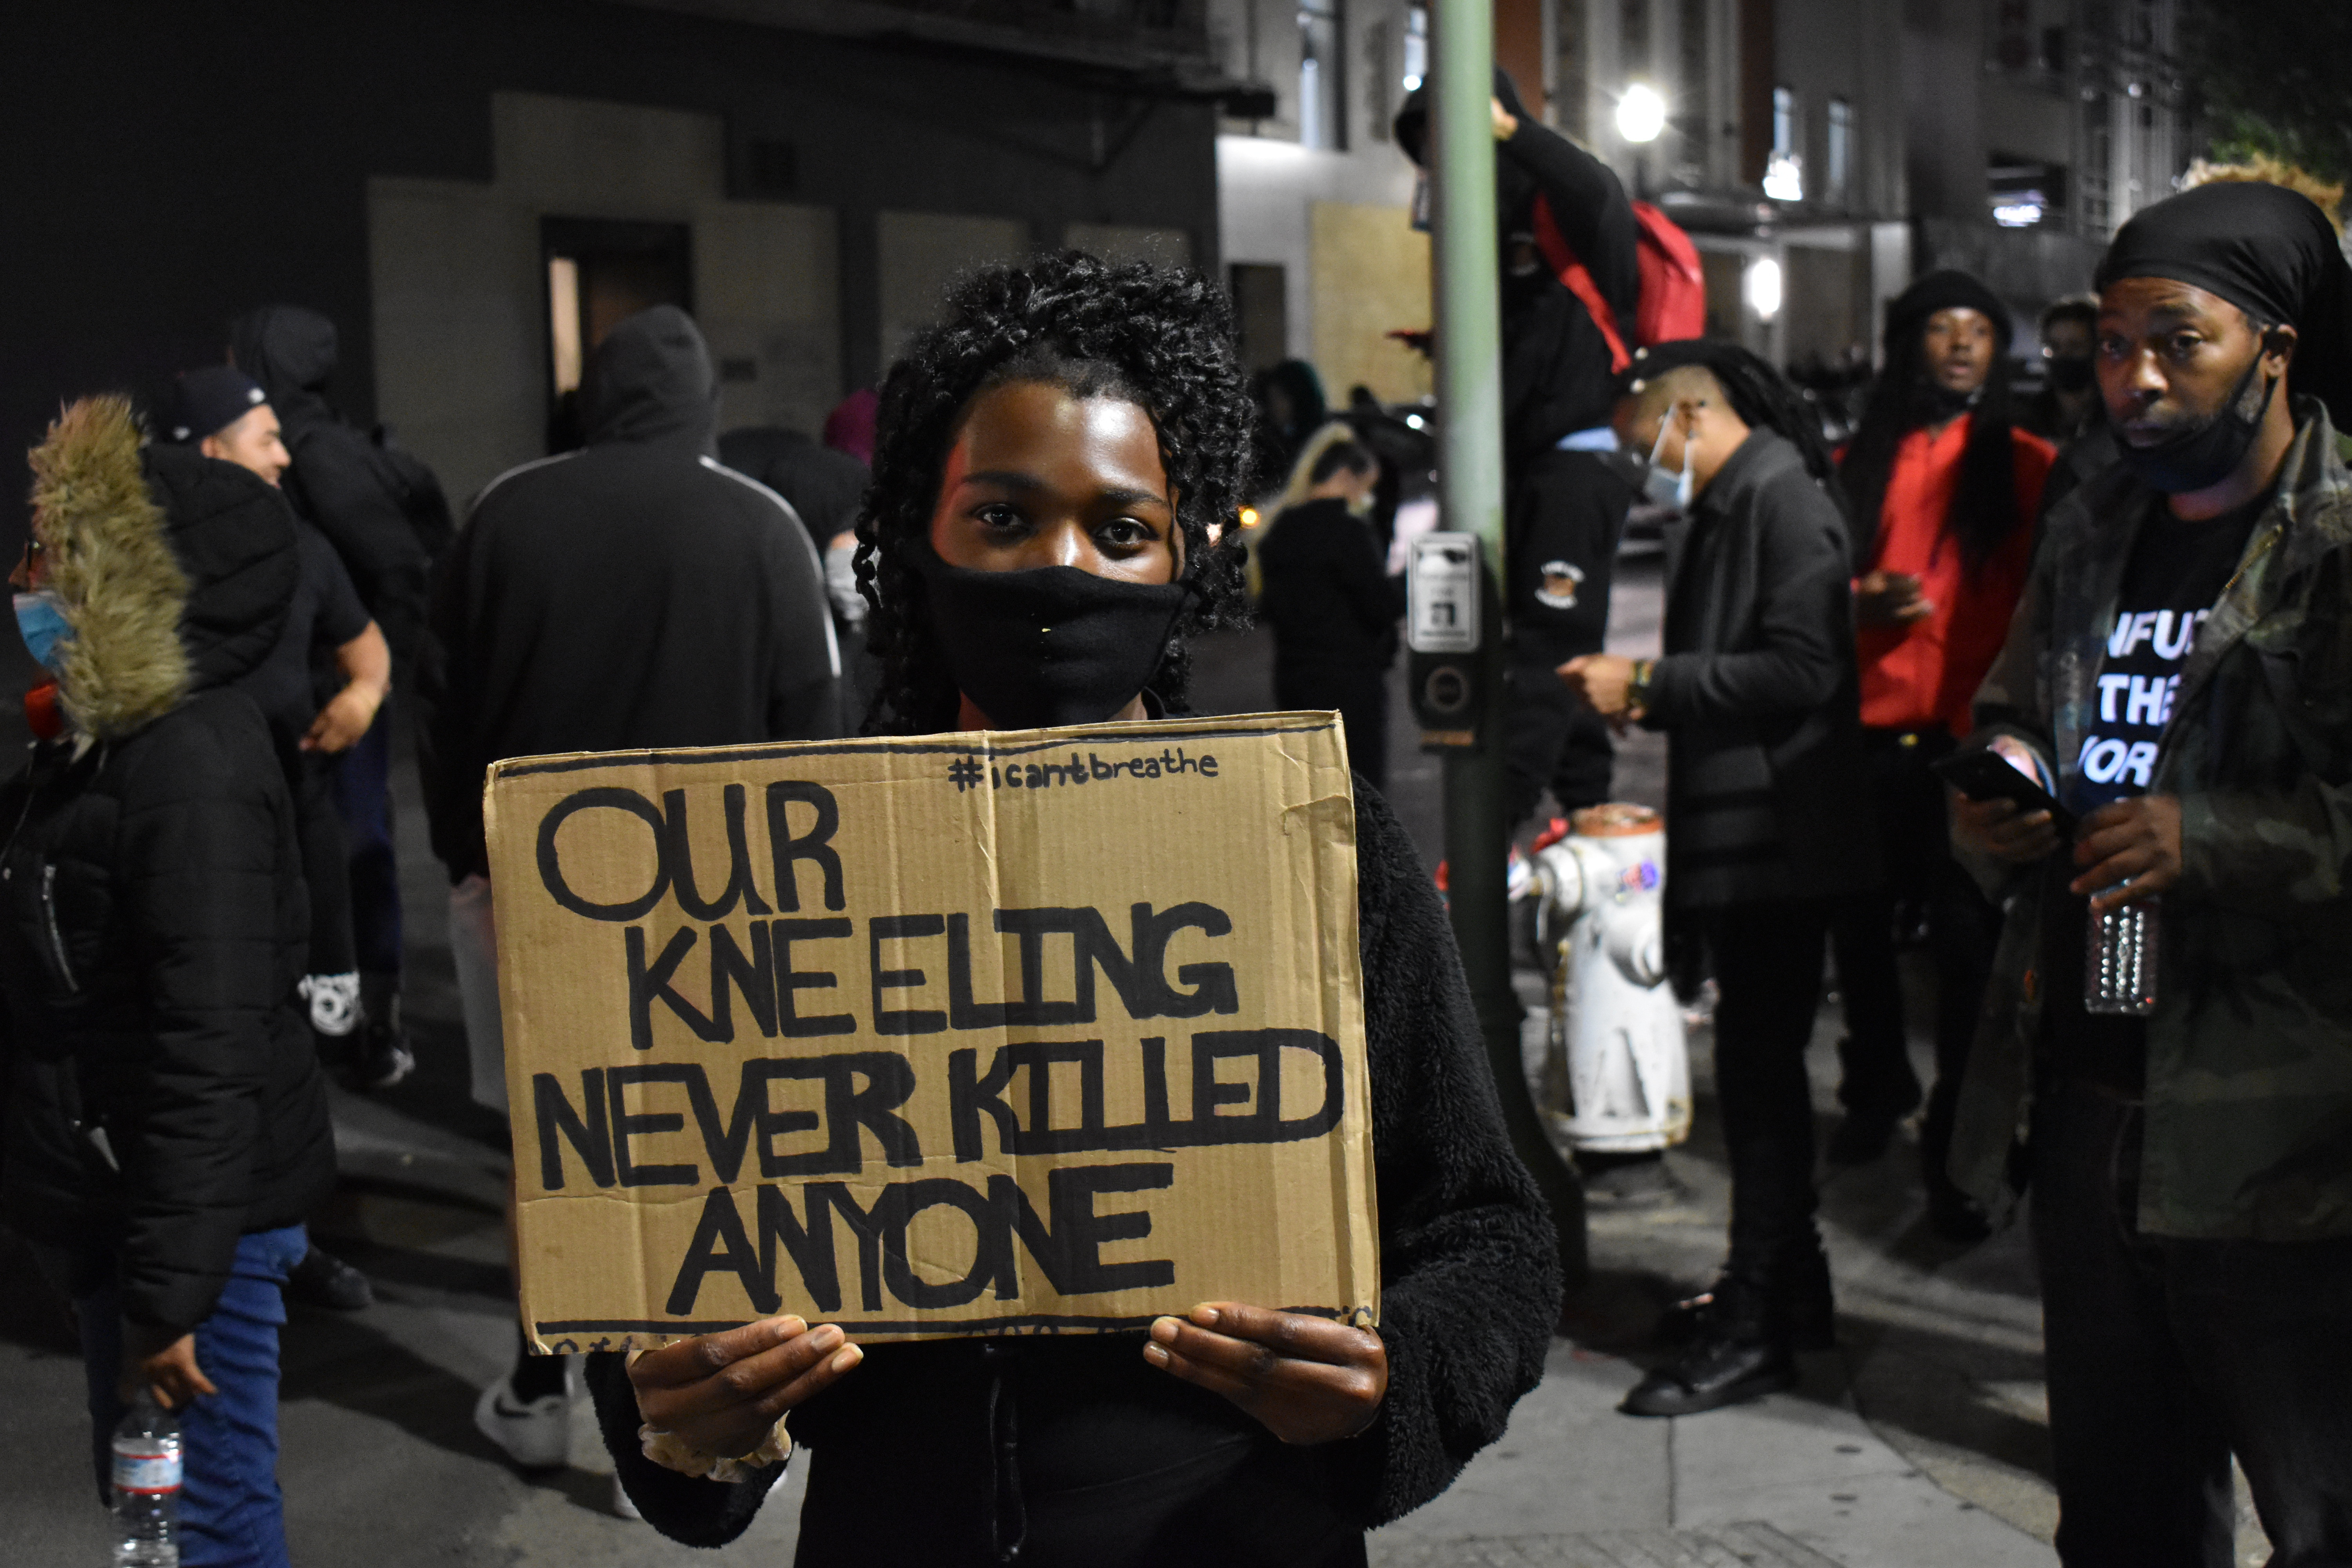 A protestor in Oakland, California holding a sign